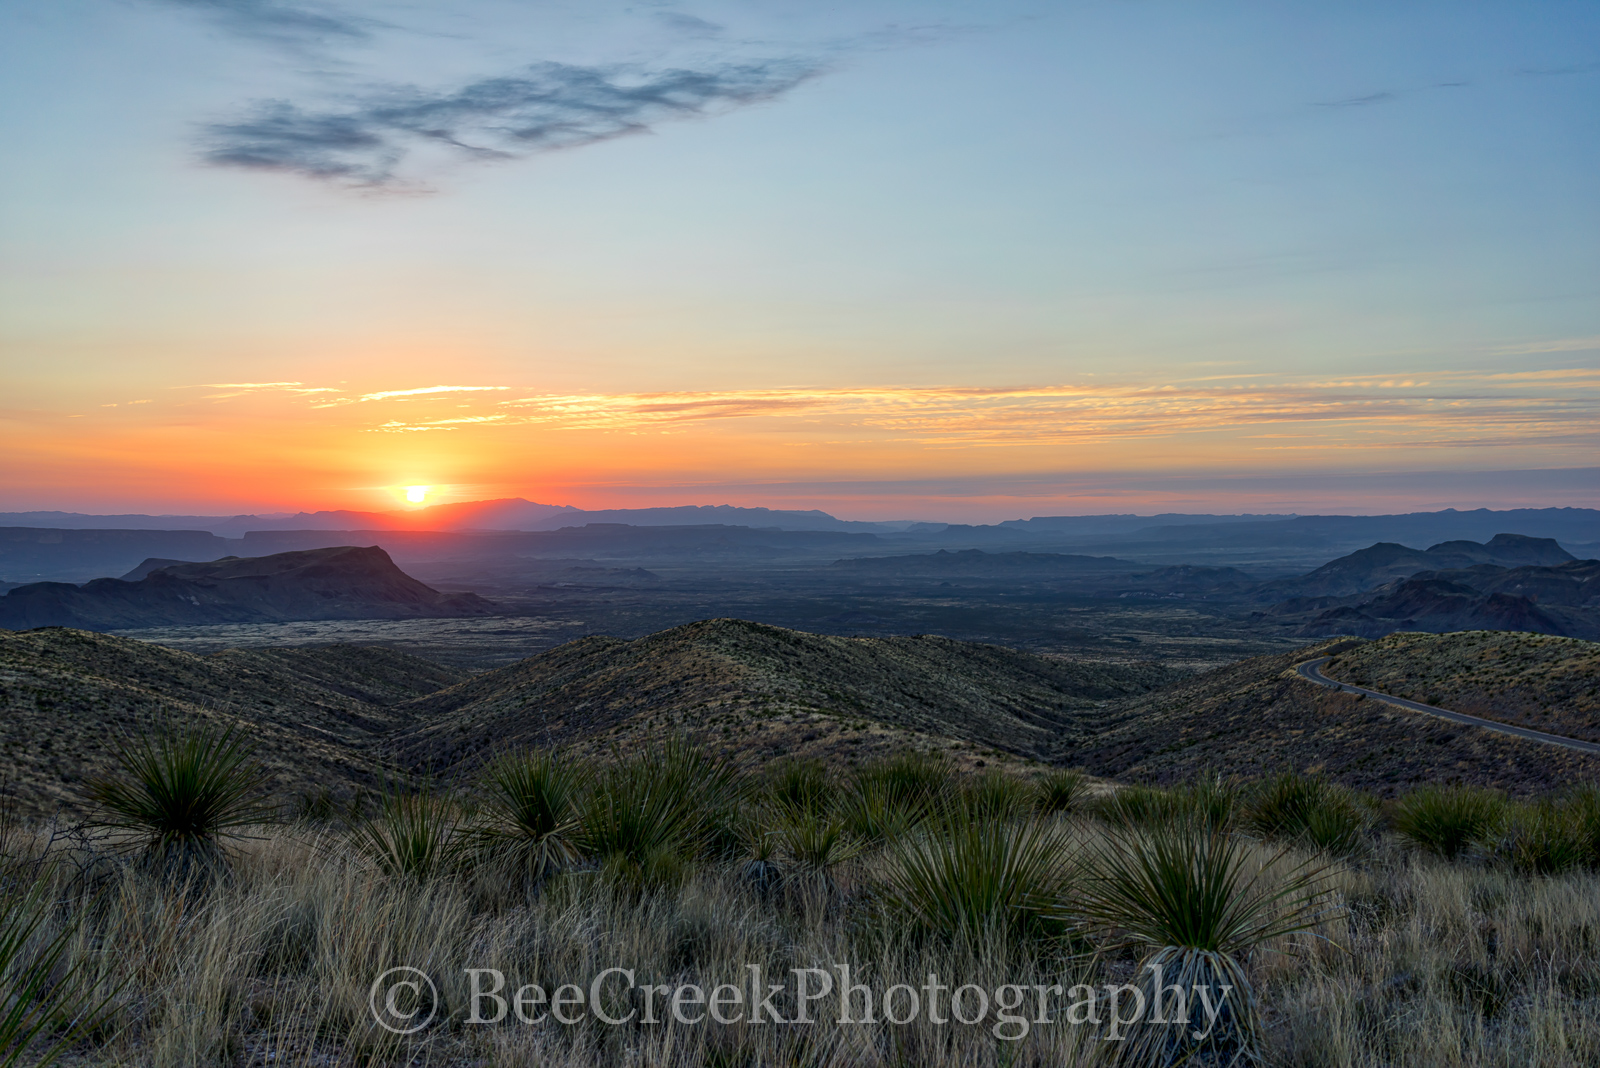 Big Bend National Park, Chihuahuan Desert, Sotal Overlook, Sotol Vista Overlook, big bend, catus, colorful, desert, landscape, sky, sotol, sotols, sunset, sunsets, yuccas, photo